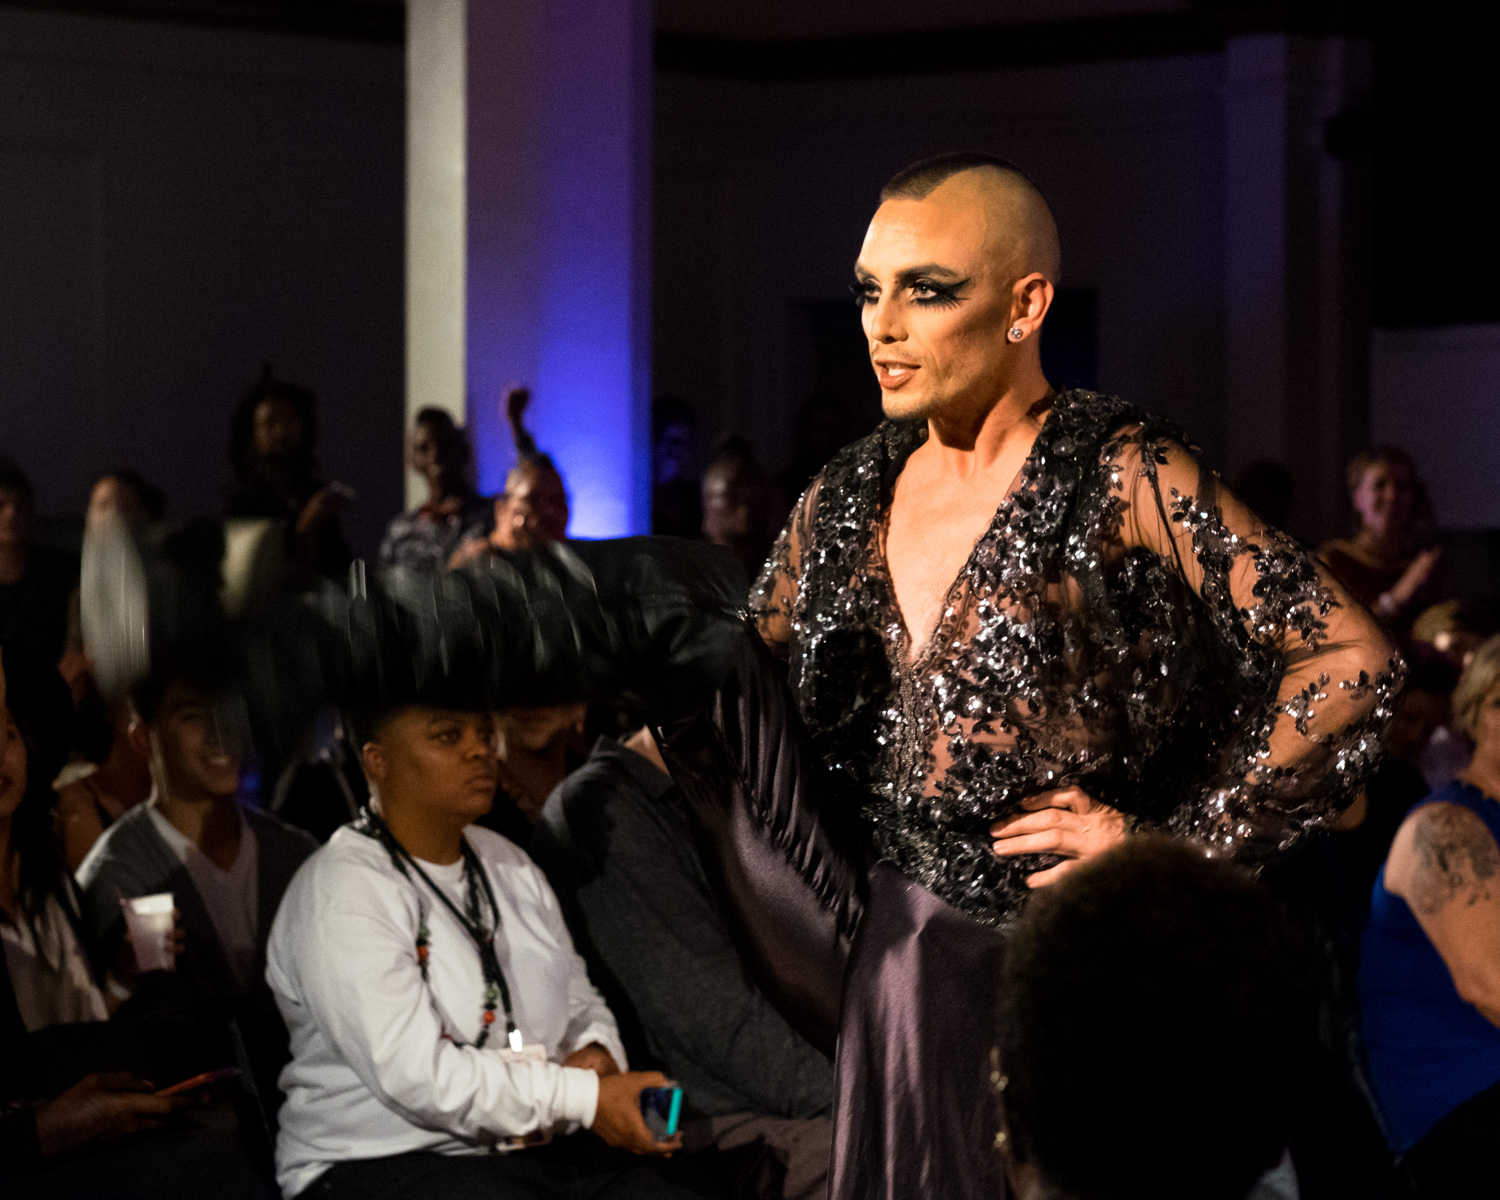 Unconventional Runway x Queer Fashion Week 2017 #31